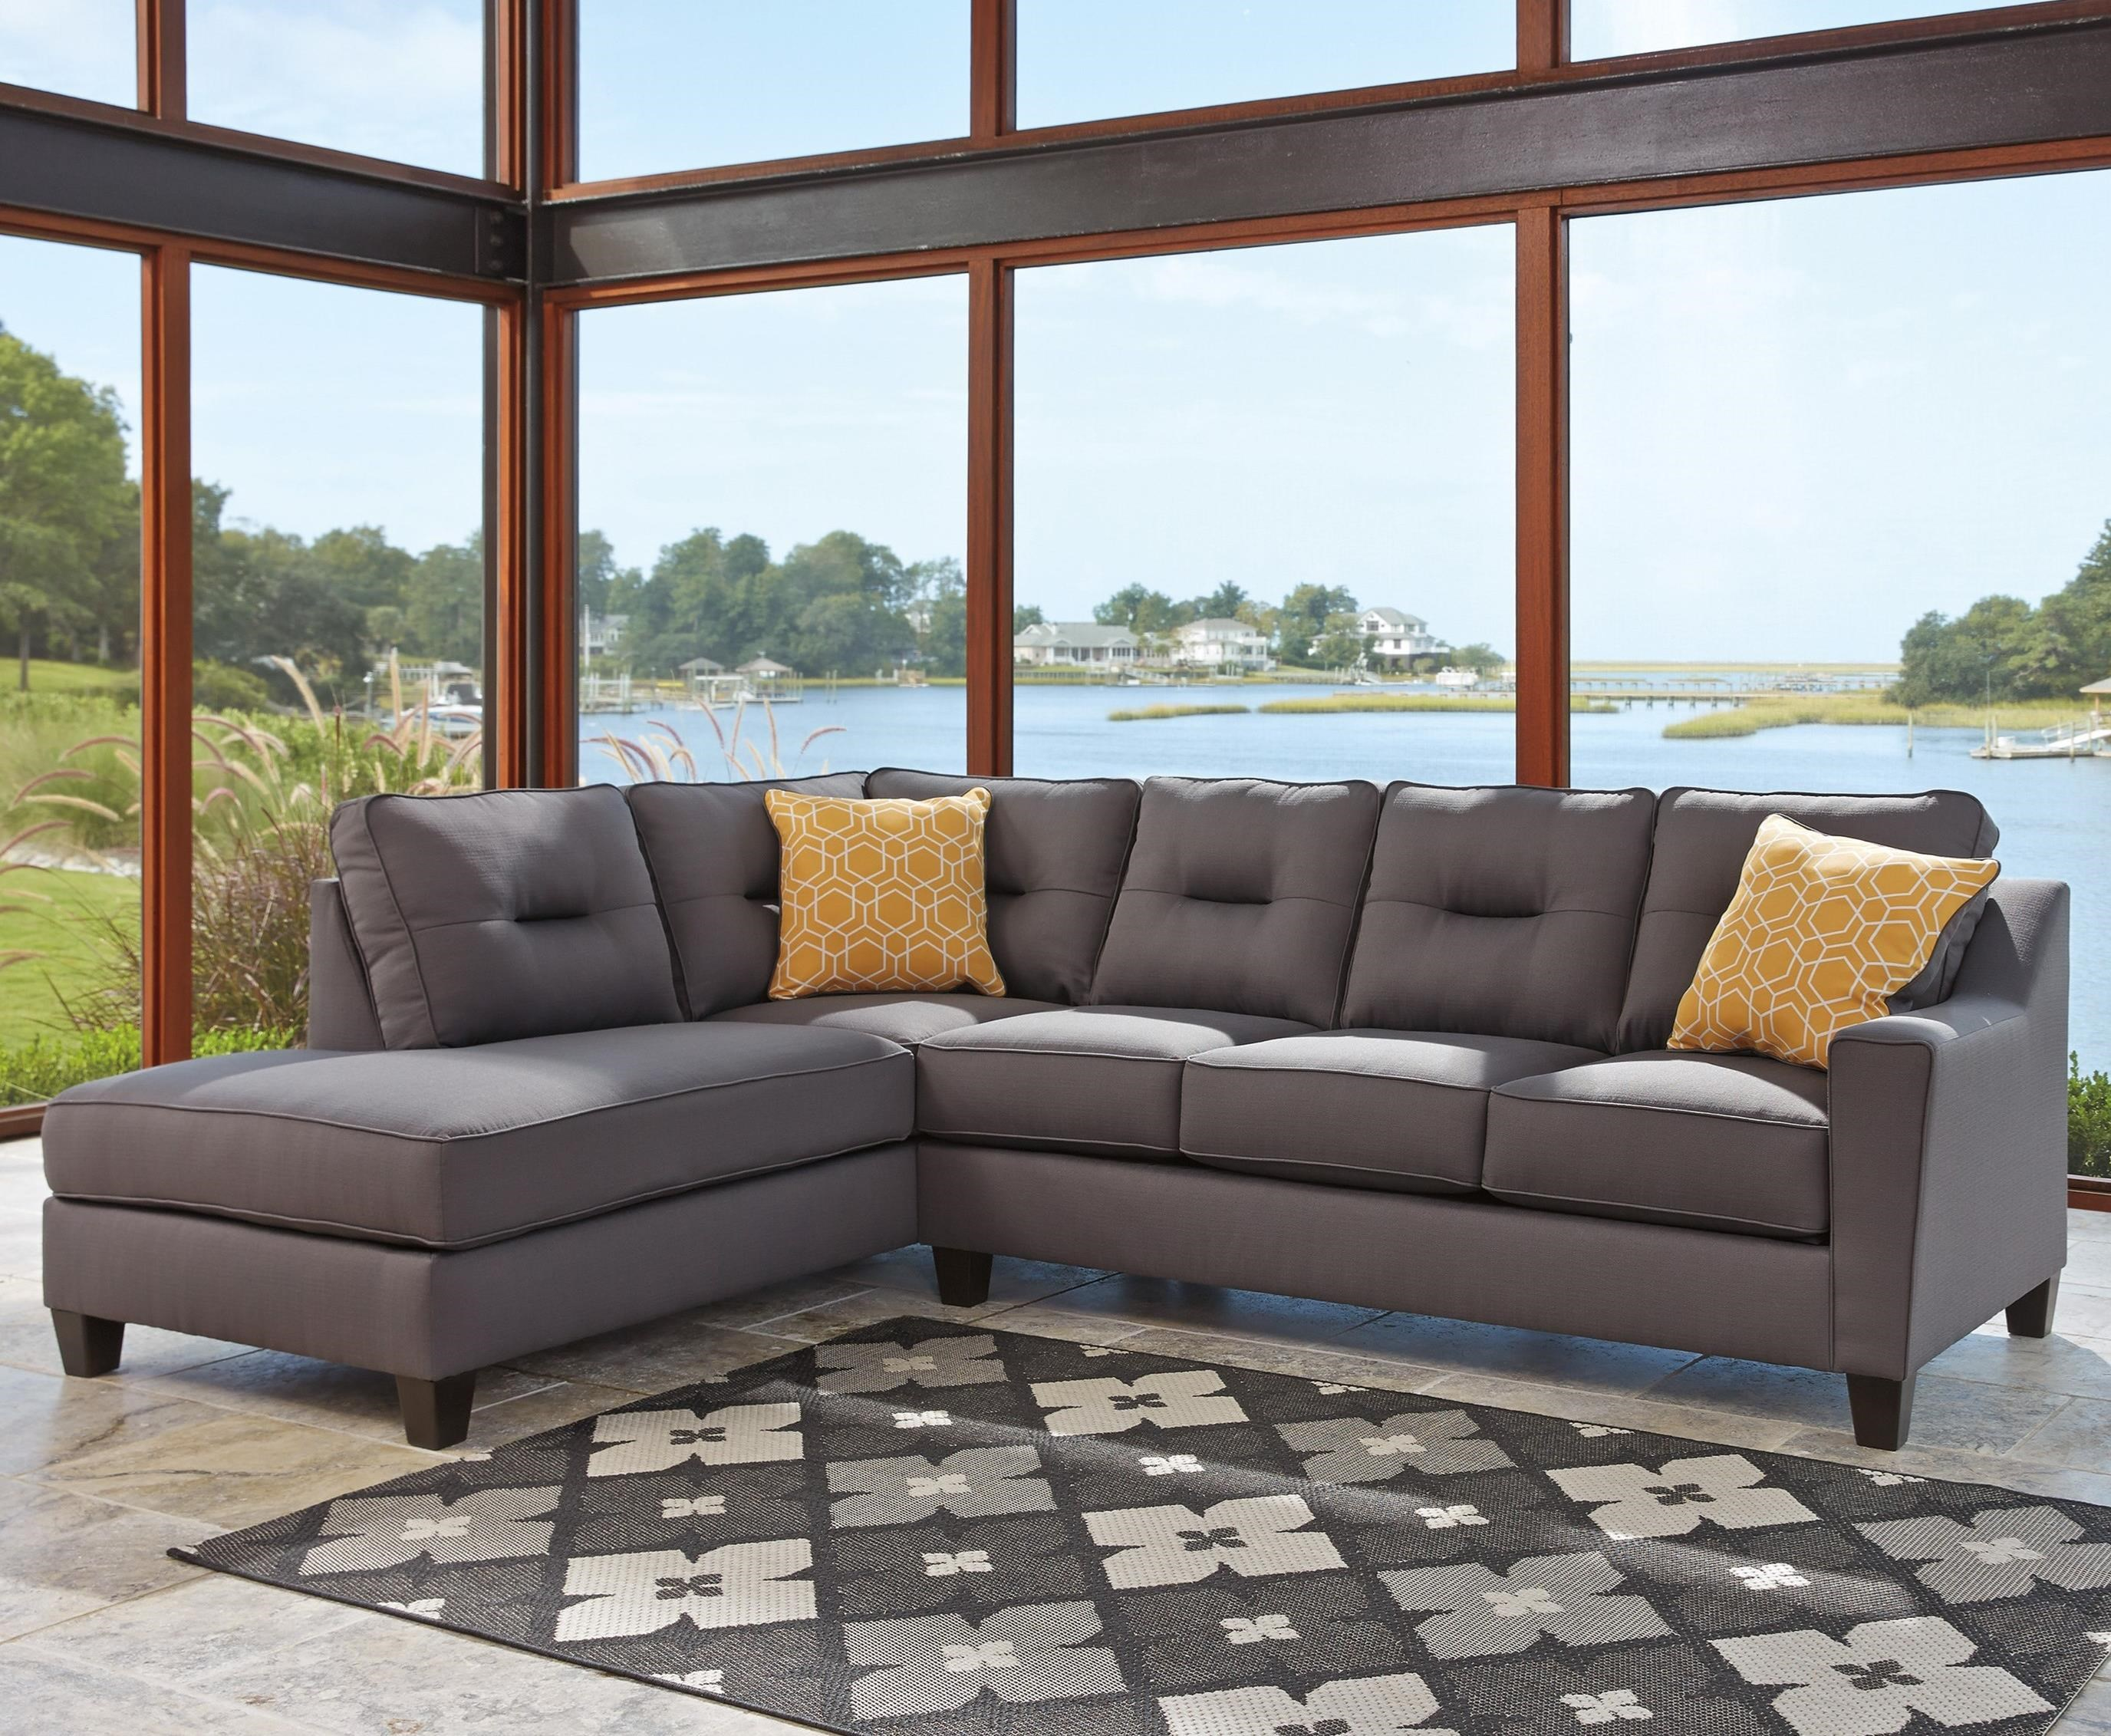 Benchcraft Kirwin Nuvella Sectional With Sleeper Sofa U0026 Chaise   Item  Number: 9960216+70